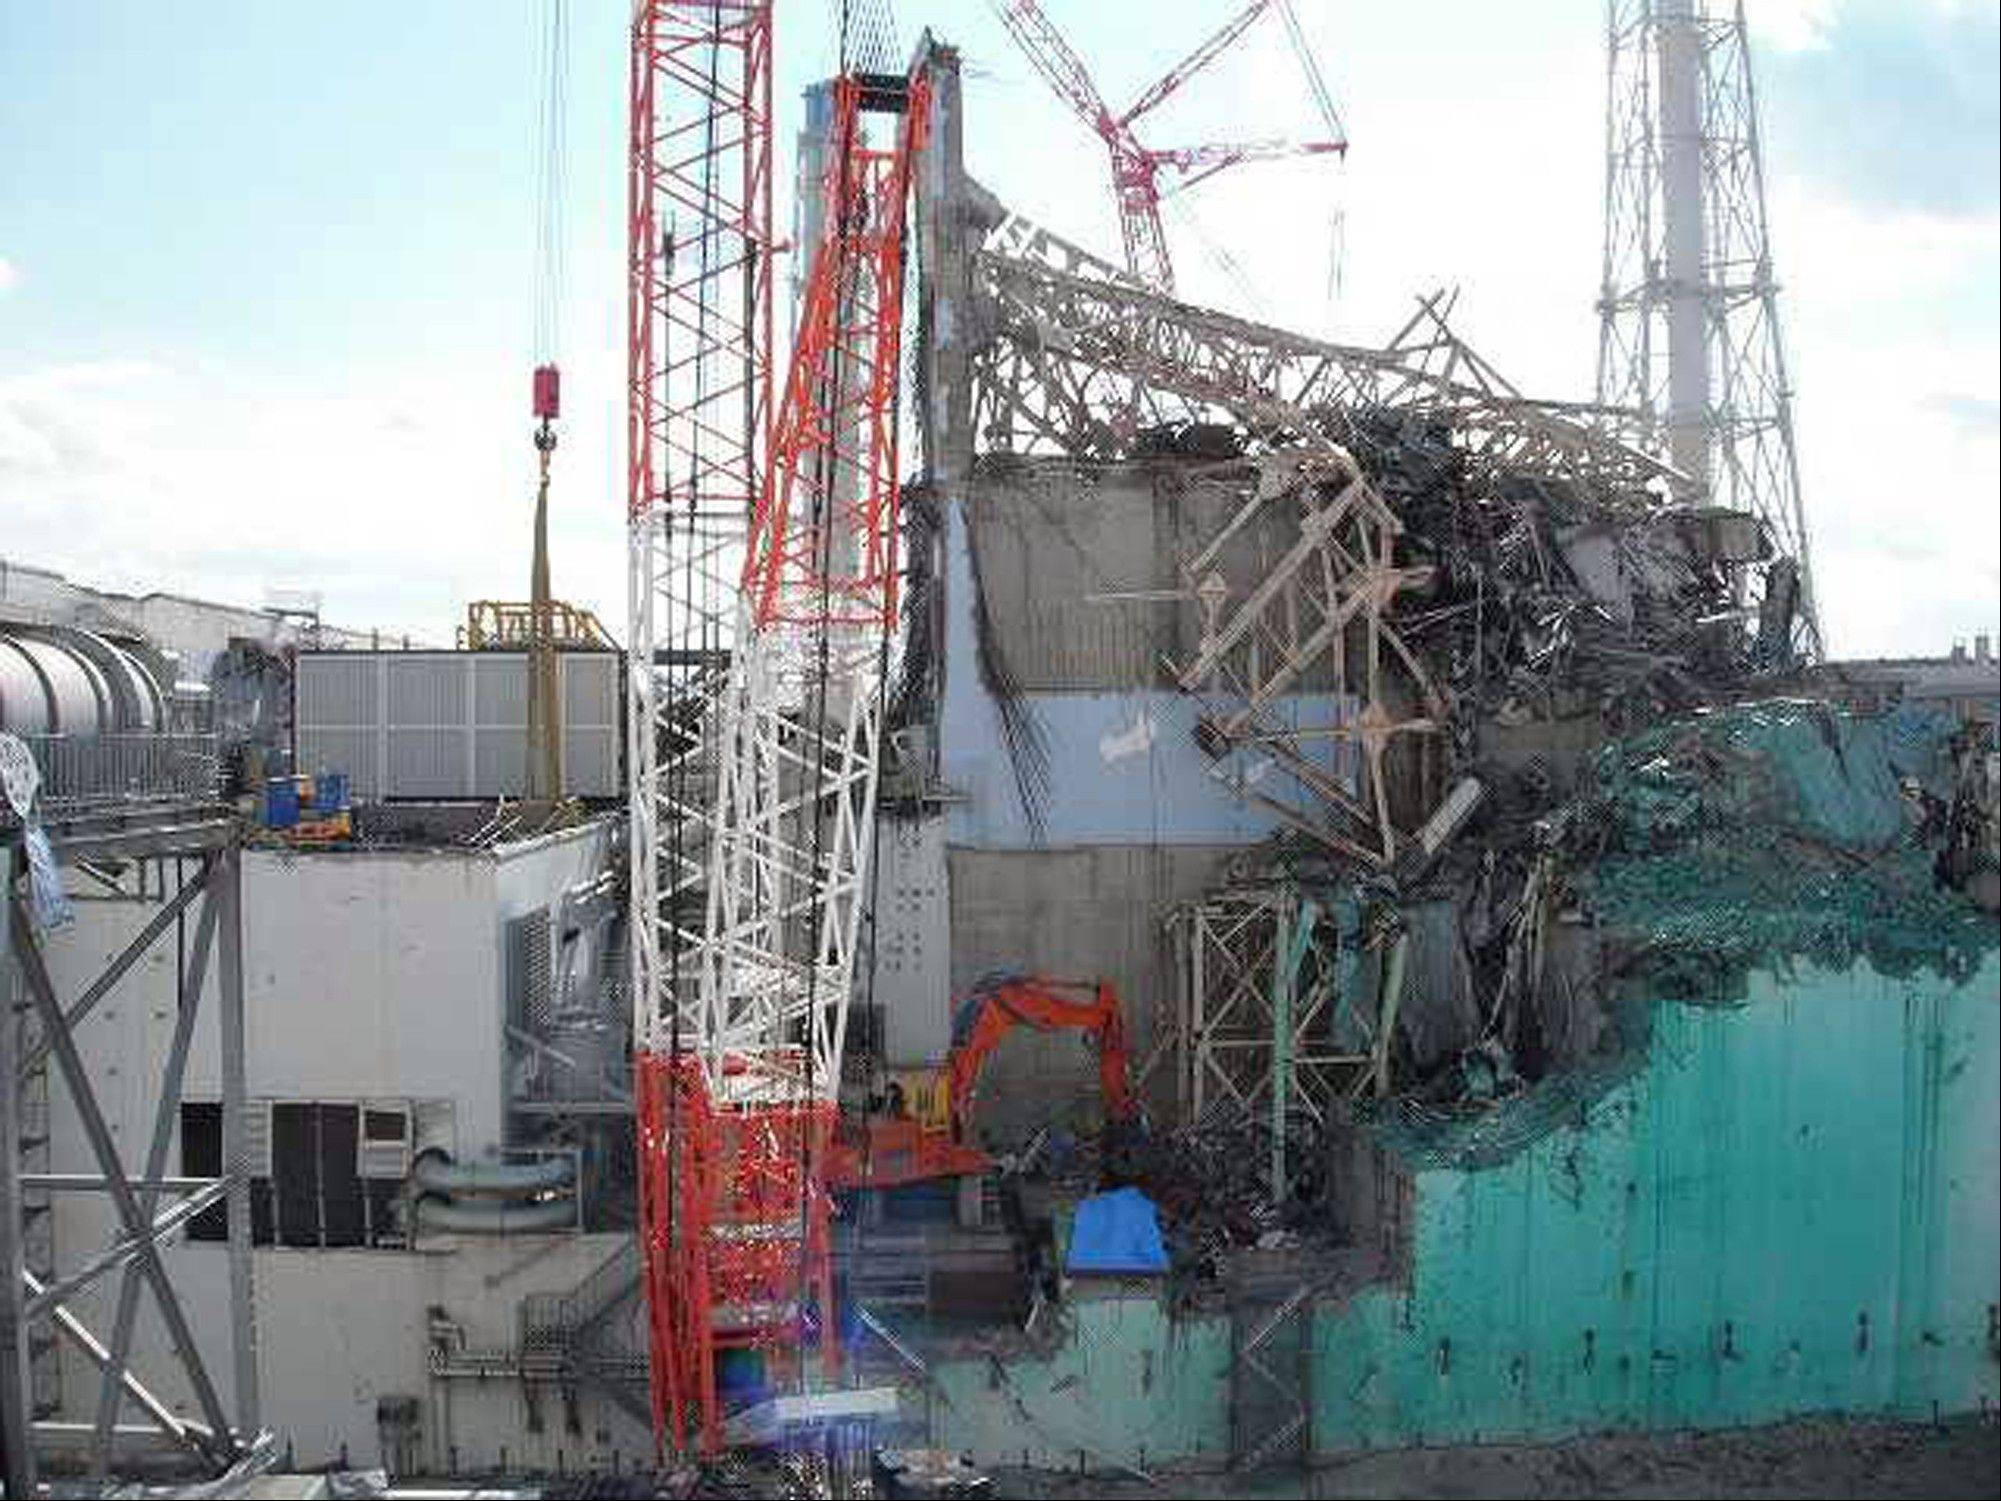 Debris covers the No. 3 nuclear reactor at the tsunami-crippled Fukushima Dai-ichi nuclear power plant in Okuma, Japan.When the tsunami triggered a triple-meltdown at the plant in March 2011, the nuclear waste that was stored in dry casks was protected, according to David Lochbaum, director of the Union of Concerned Scientists' Nuclear Safety Project.